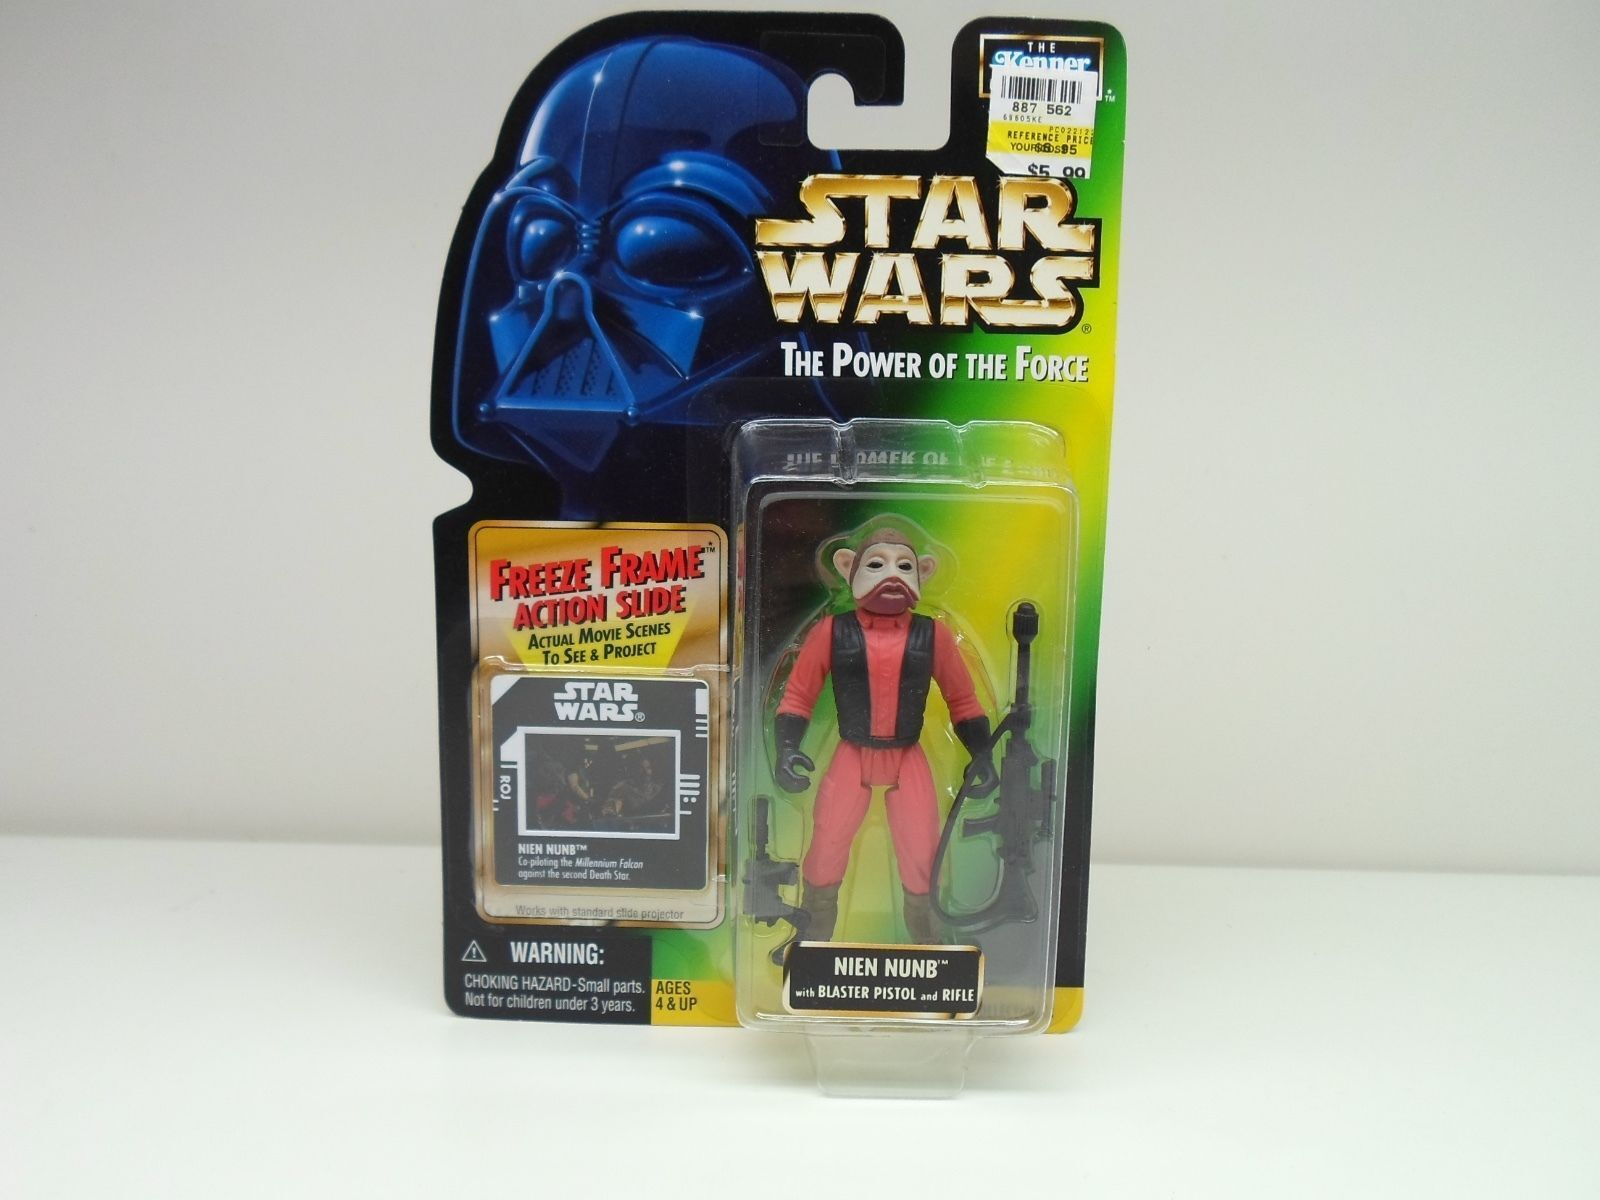 Star Wars Kenner Power of the Force Action Freeze Frame 1997 1998 Action Force Figures Sealed 140088